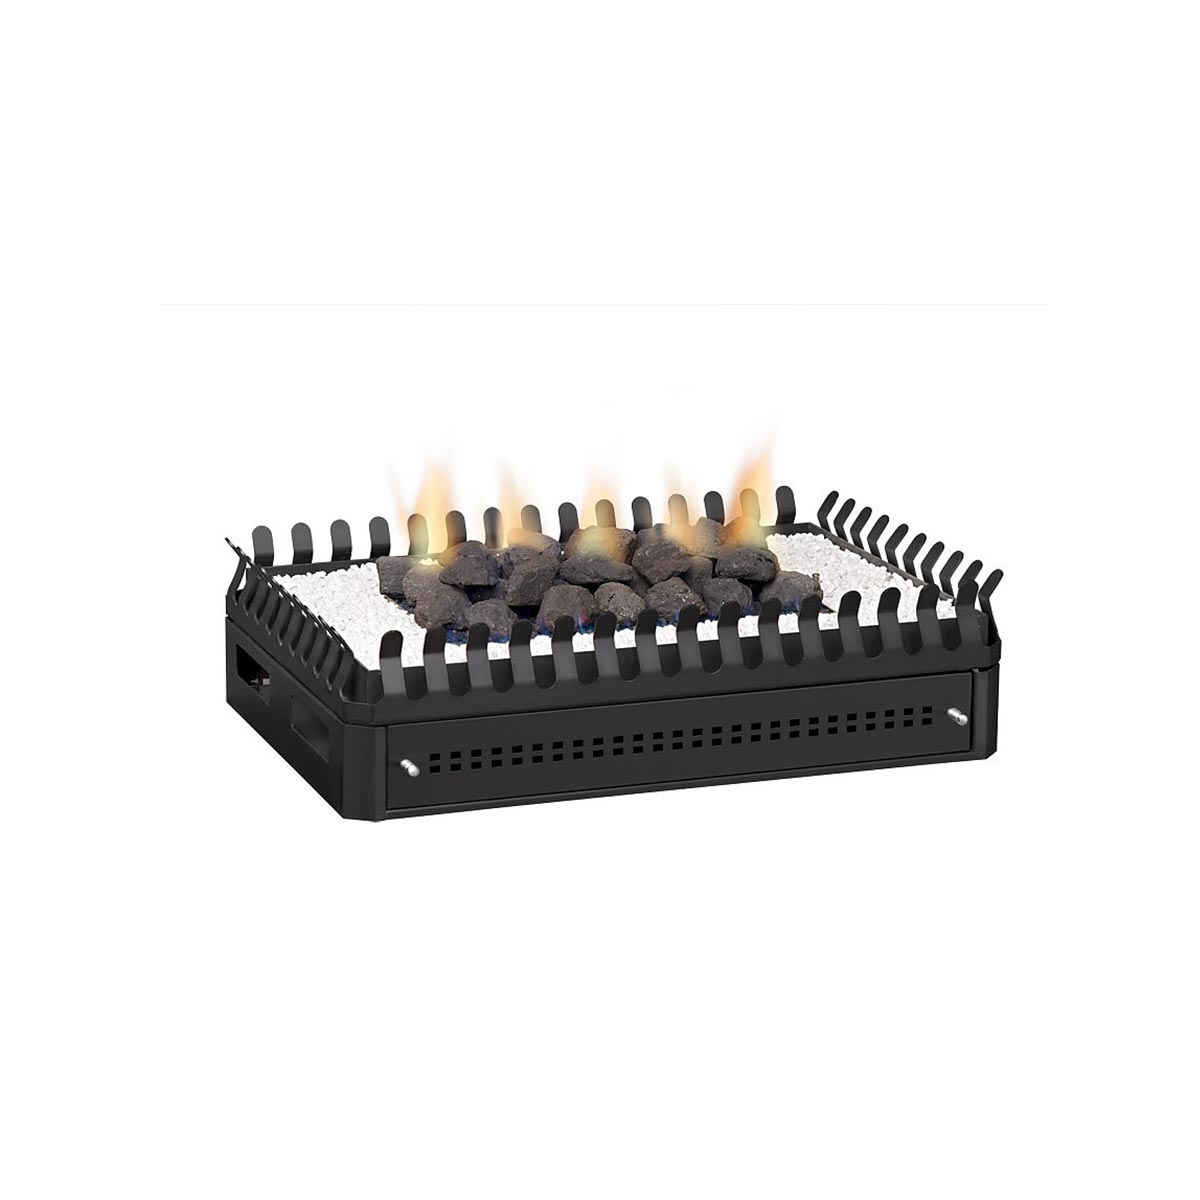 Chad O Chef 700 Double Sided Universal Grate Fireplace